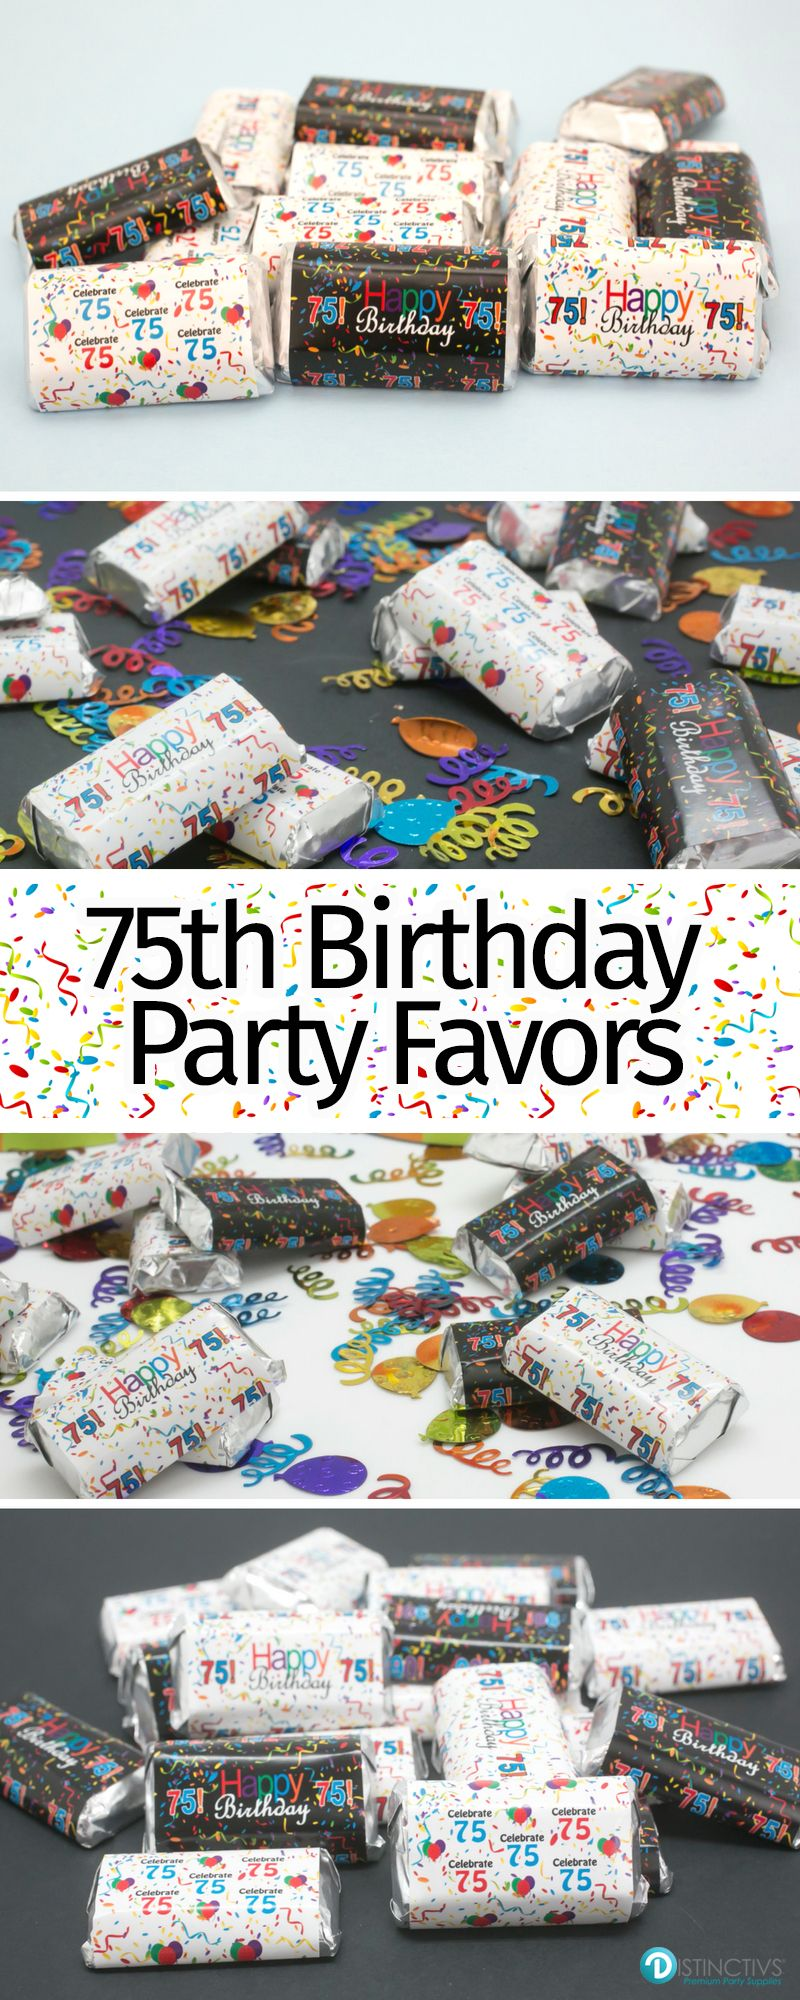 Make Your Own DIY Happy 75th Birthday Party Treats By Simply Peeling And Wrapping These Stickers On Hersheys Miniatures Perfect For Favors Decorations